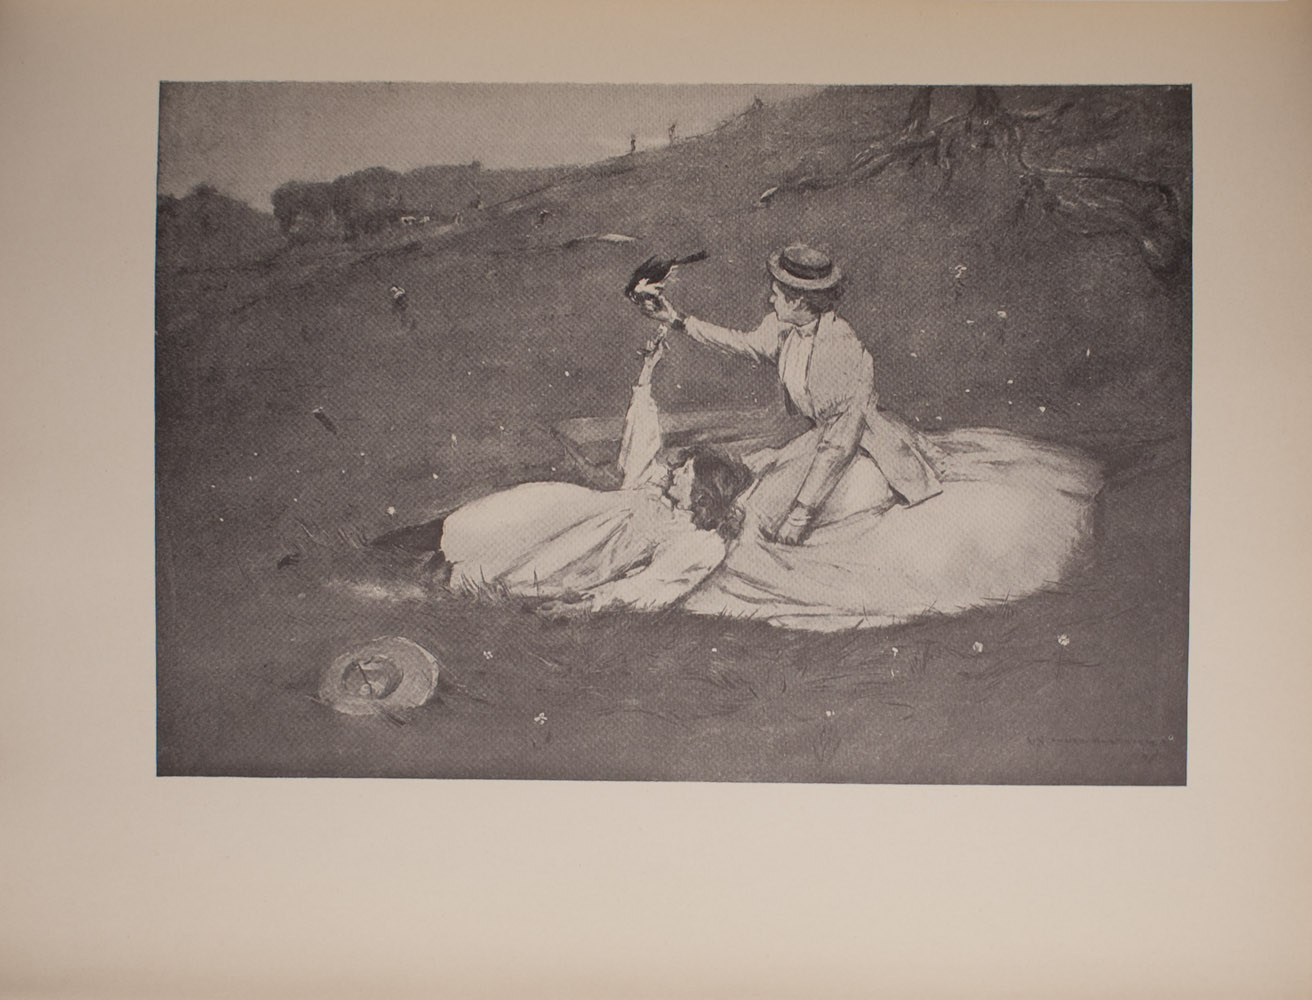 The image is of two women on a hillside One of the women is seated and wears a light coloured skirt with a light coloured jacket Her skirt is spread around her She is wearing a hat and her head is slightly turned away from the viewer Her right arm is extended and a black bird is resting on her fingers The other woman is to the left of the seated woman She is reclined and resting against the seated woman She is wearing a light coloured dress and her hair is down Her right arm is extended towards the black bird She is in profile and smiling Next to the reclining woman further in the foreground is a hat Beyond the two women large tree roots are visible In the background there are more trees and hills Two figures are visible climbing up the hill in the far background There are light coloured flowers around the women The image is horizontally displayed